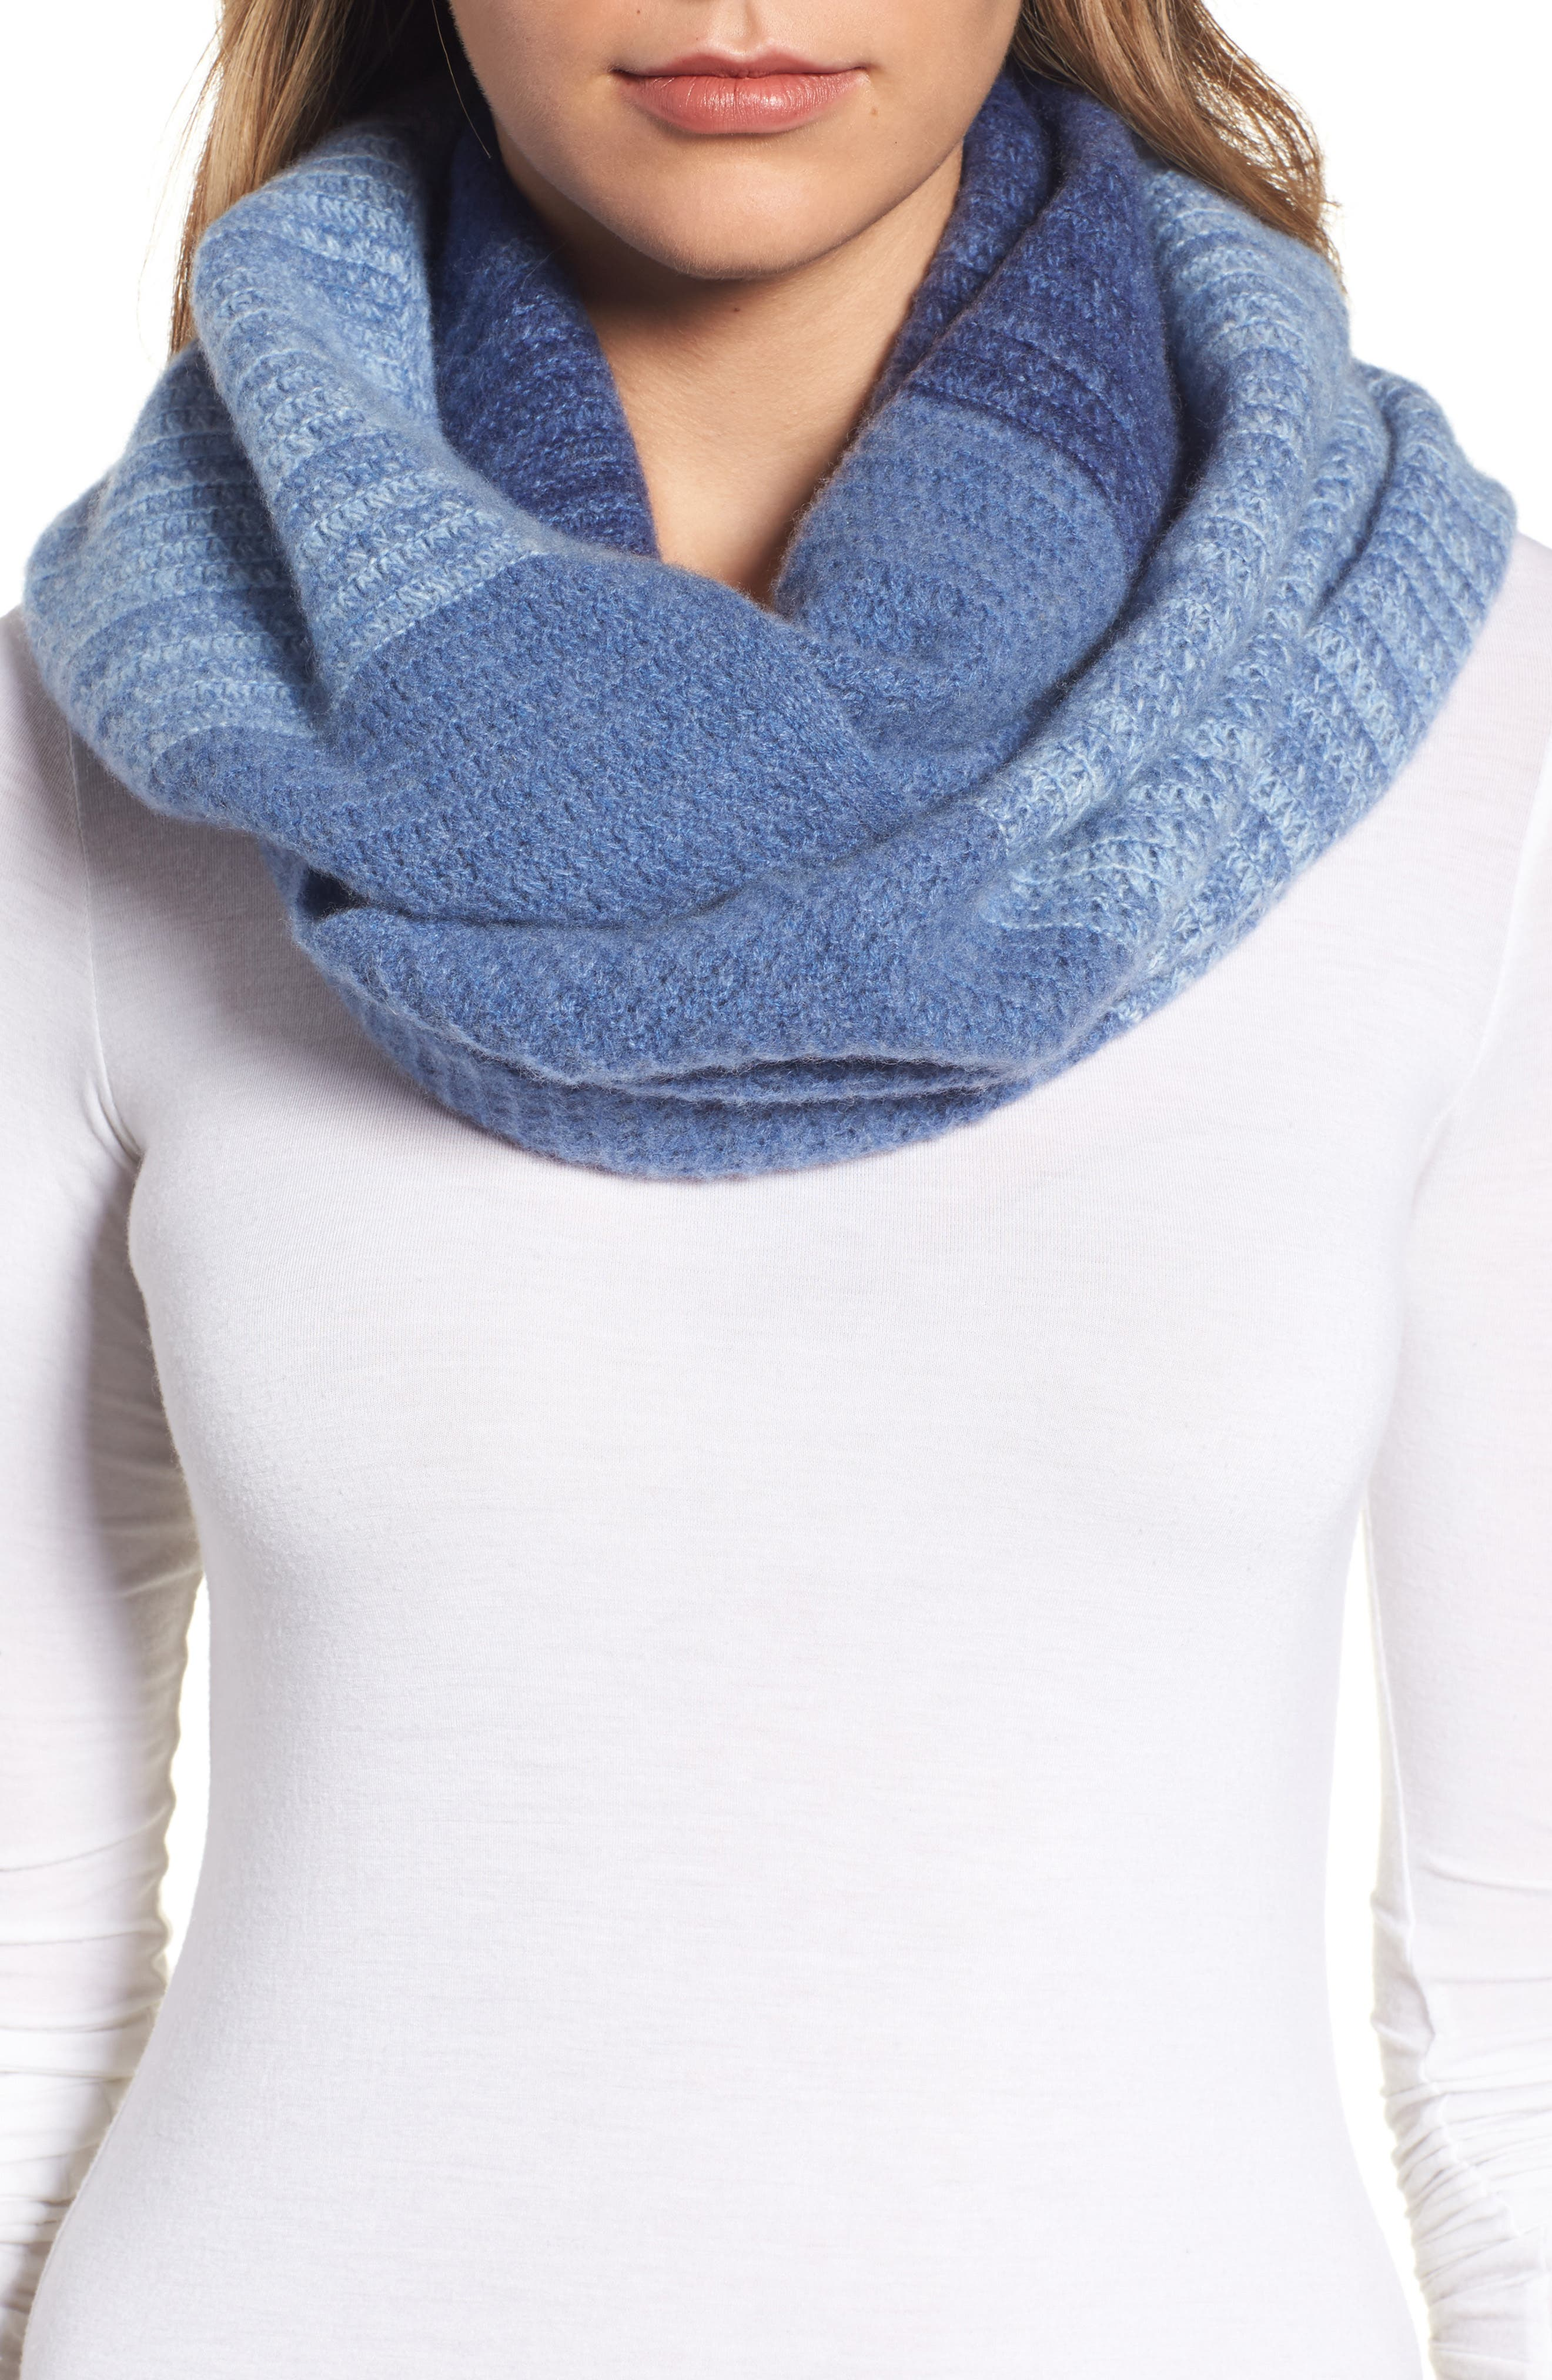 Ombré Cashmere Infinity Scarf,                             Main thumbnail 1, color,                             Navy Combo